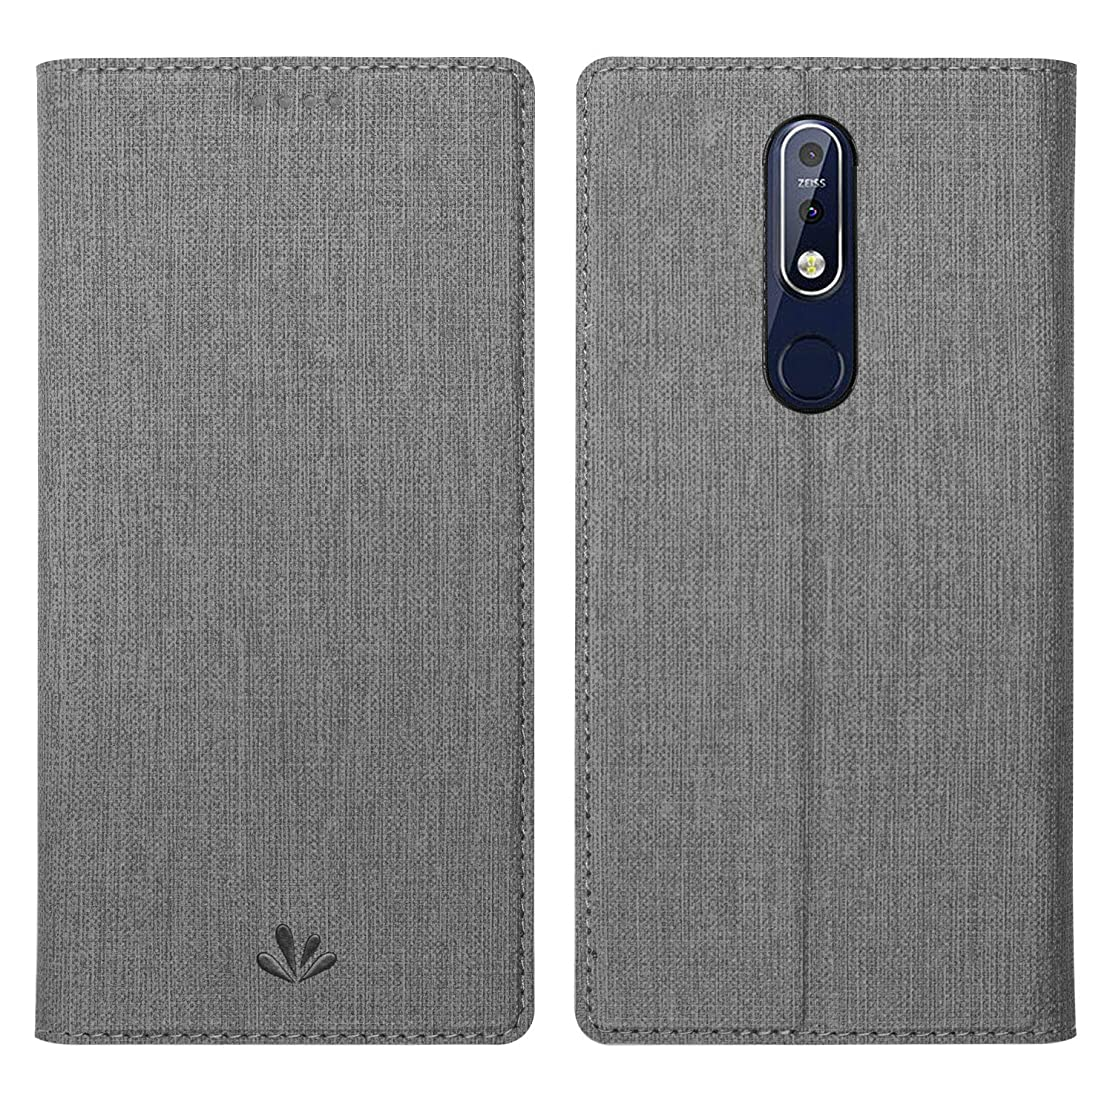 Simicoo Nokia 7.1 Flip PU Leather Slim Wallet case Card Holster Stand Magnetic Cover Clear Silicone TPU Full Body Shockproof Pocket Thin Wallet Case for Nokia 7.1 (Grey, Nokia 7.1)